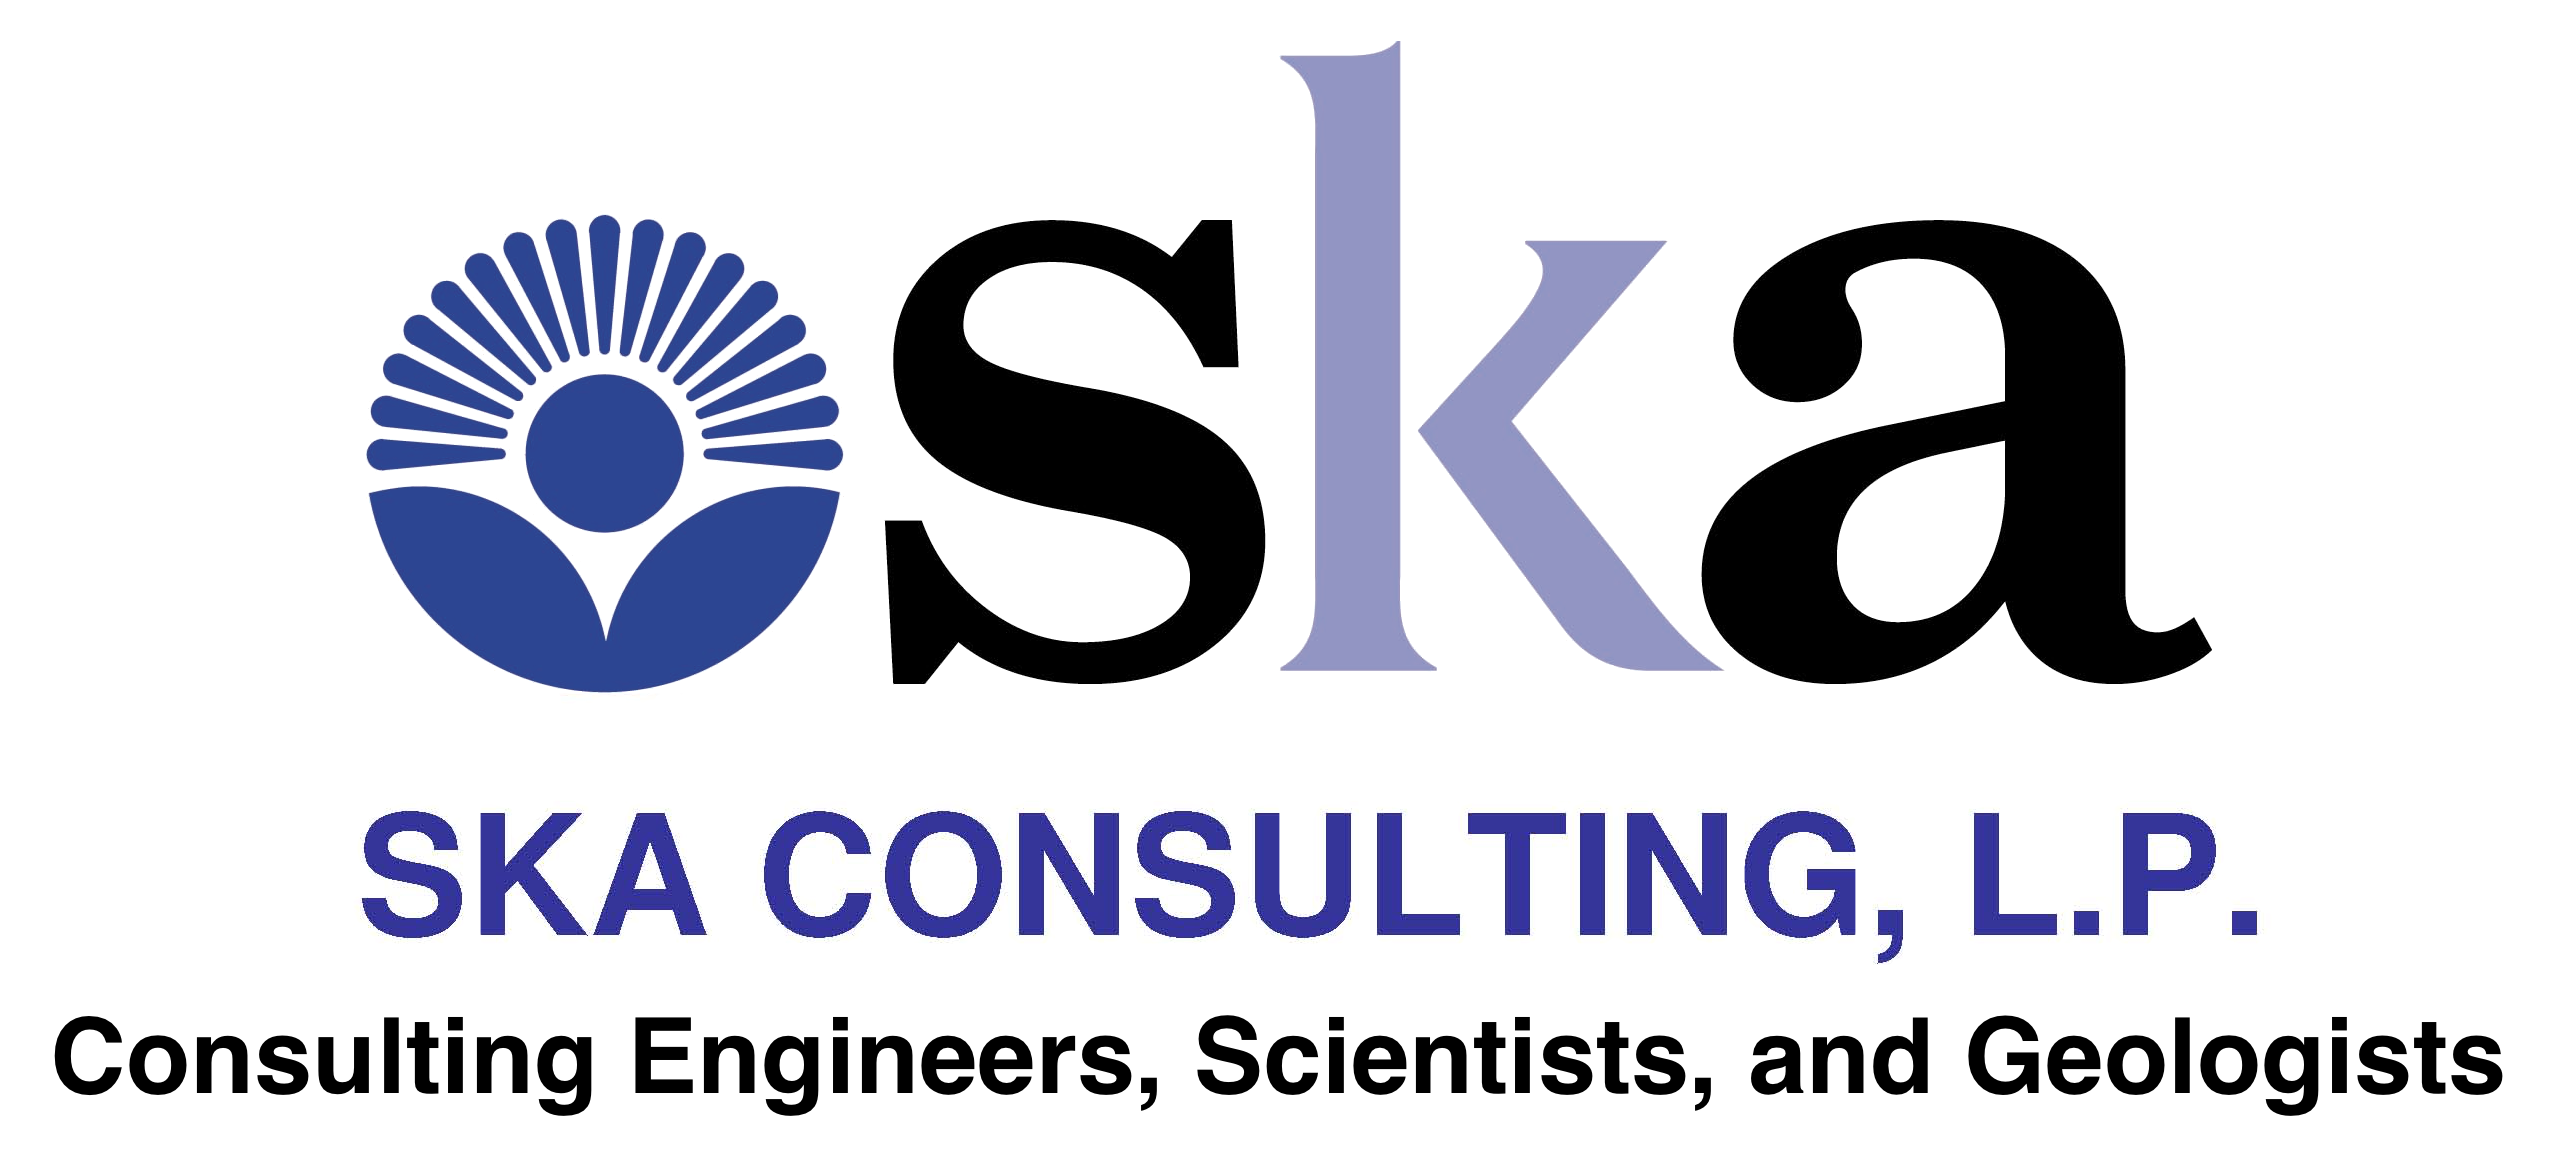 photo How to Work Effectively With Consulting Engineers